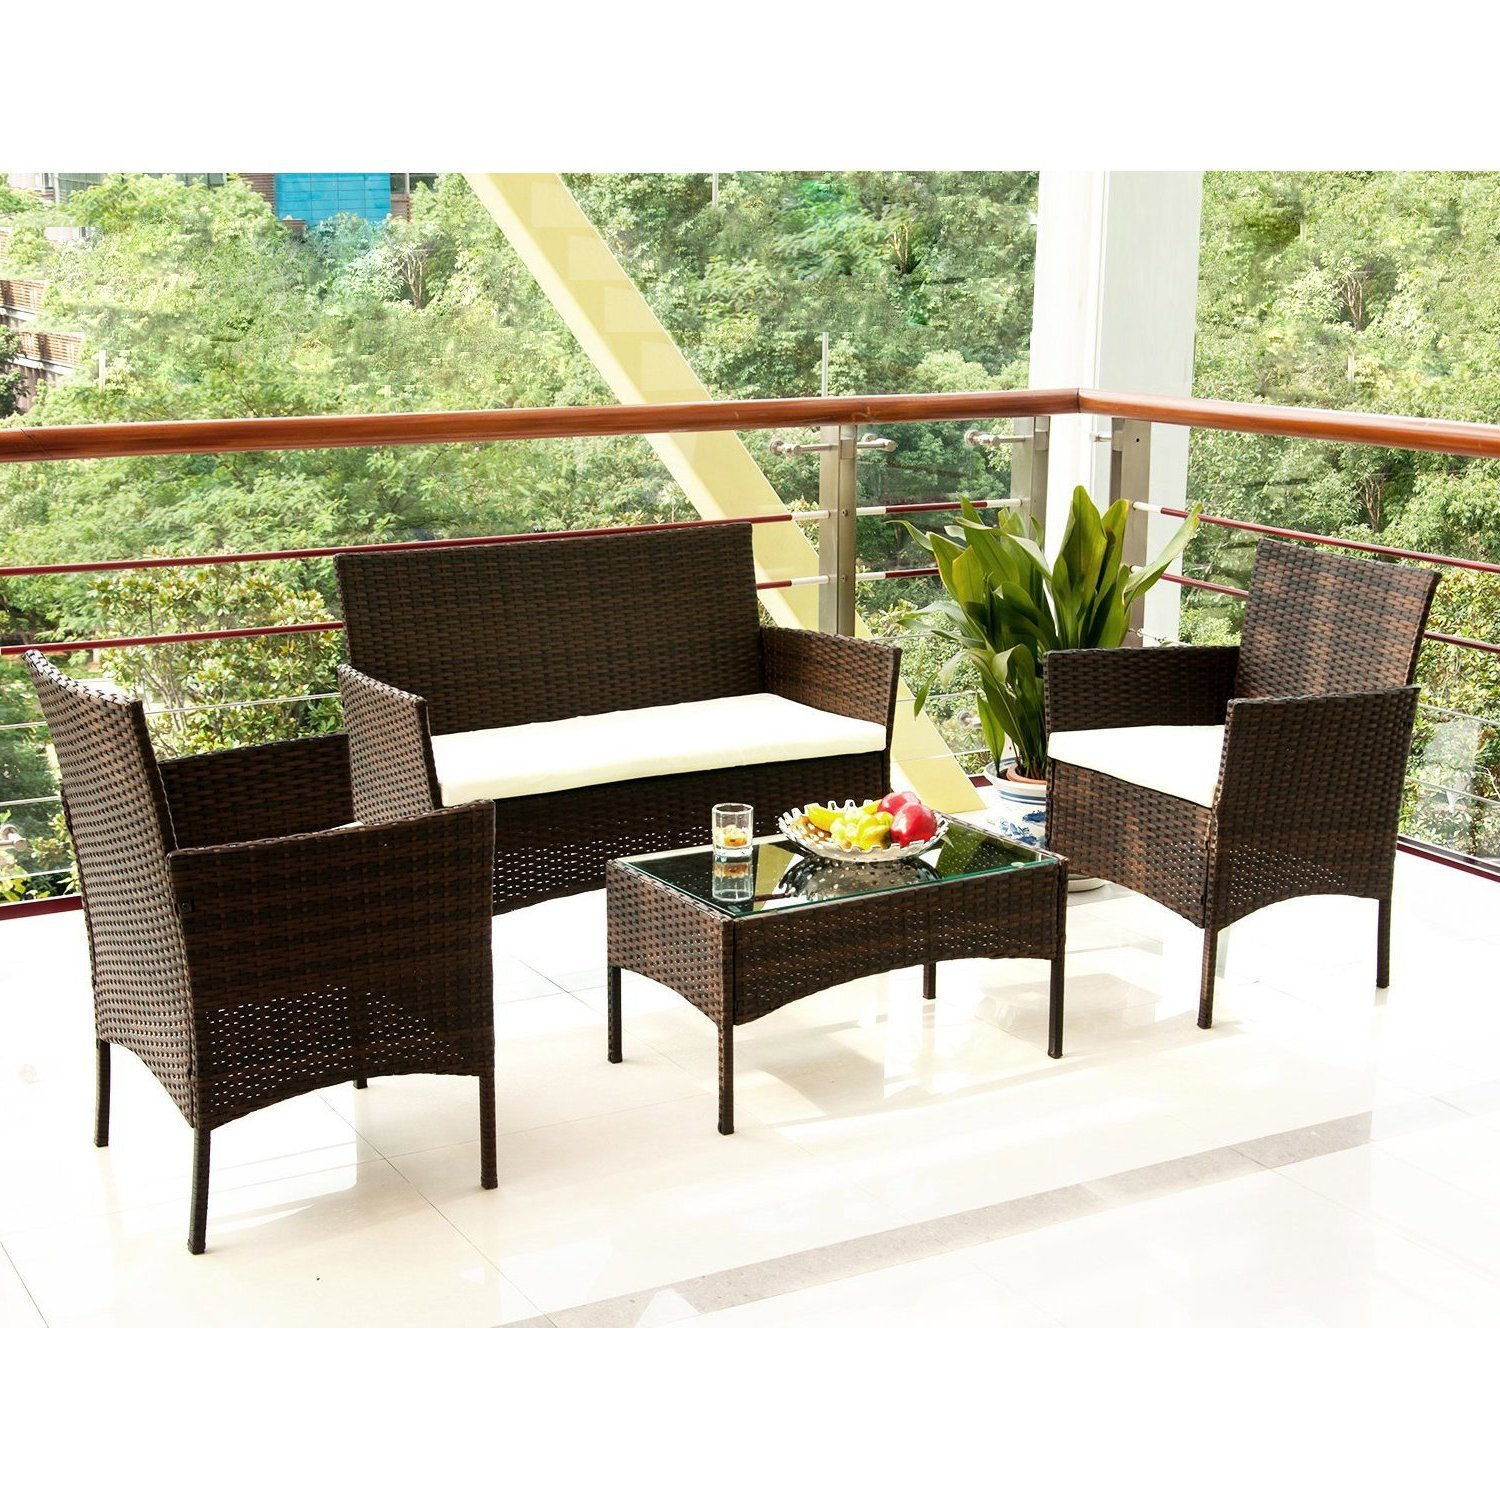 Outdoor Patio Furniture Set Cushioned 4 Pieces Wicker Patio Set Table, Two Chairs and a Loveseat Brown Finish and White Cushions Outdoor Furniture Lawn Rattan Garden Set